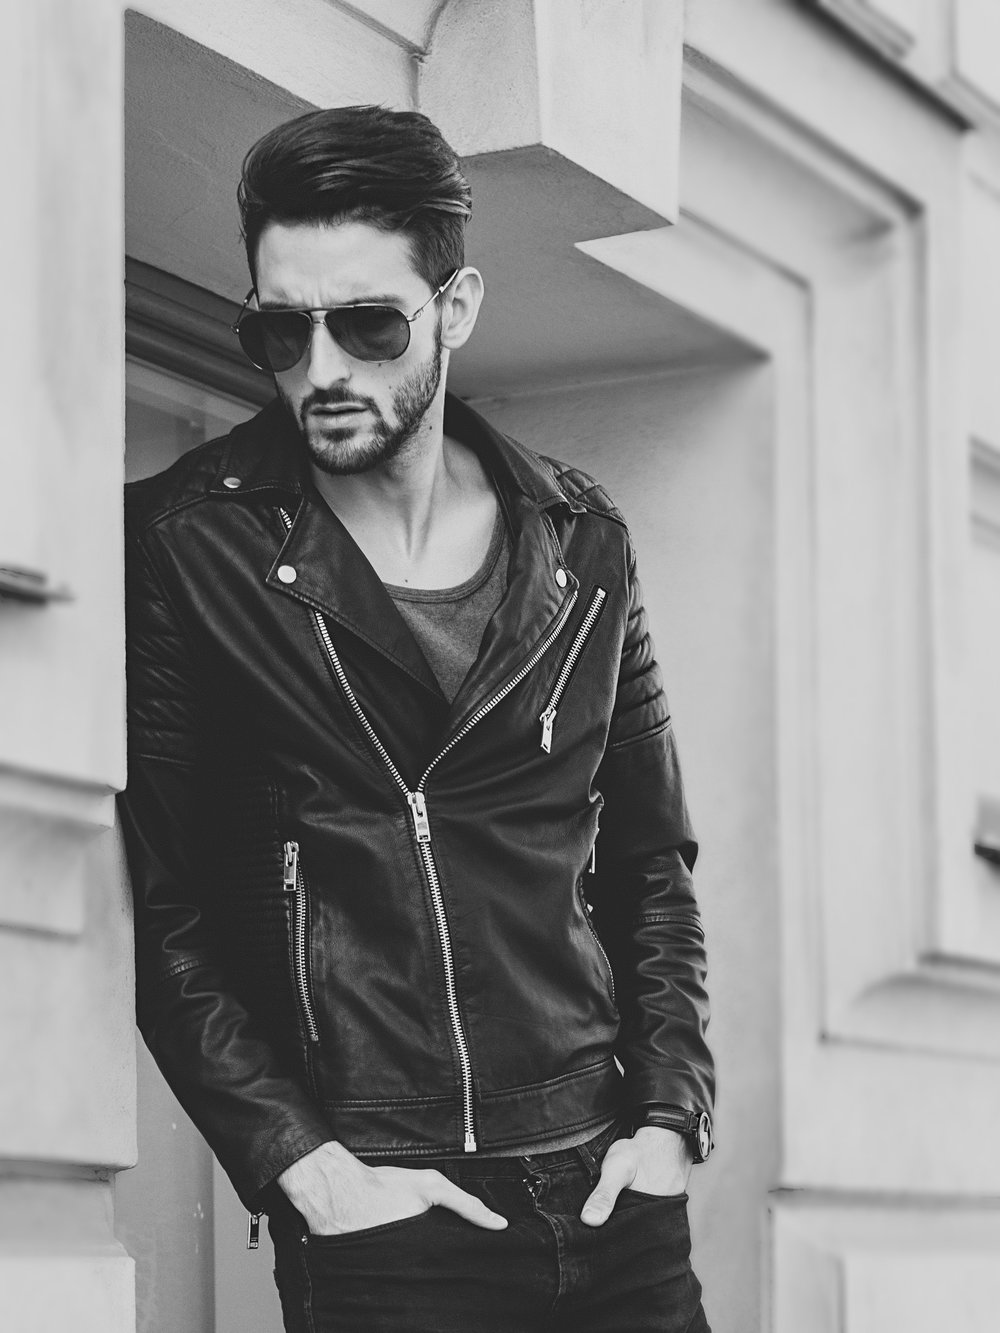 Photoshoot Jack and Jones Gucci Watch streetstyle Mens blog David Lundin Top Model Beard Hair -1.jpg